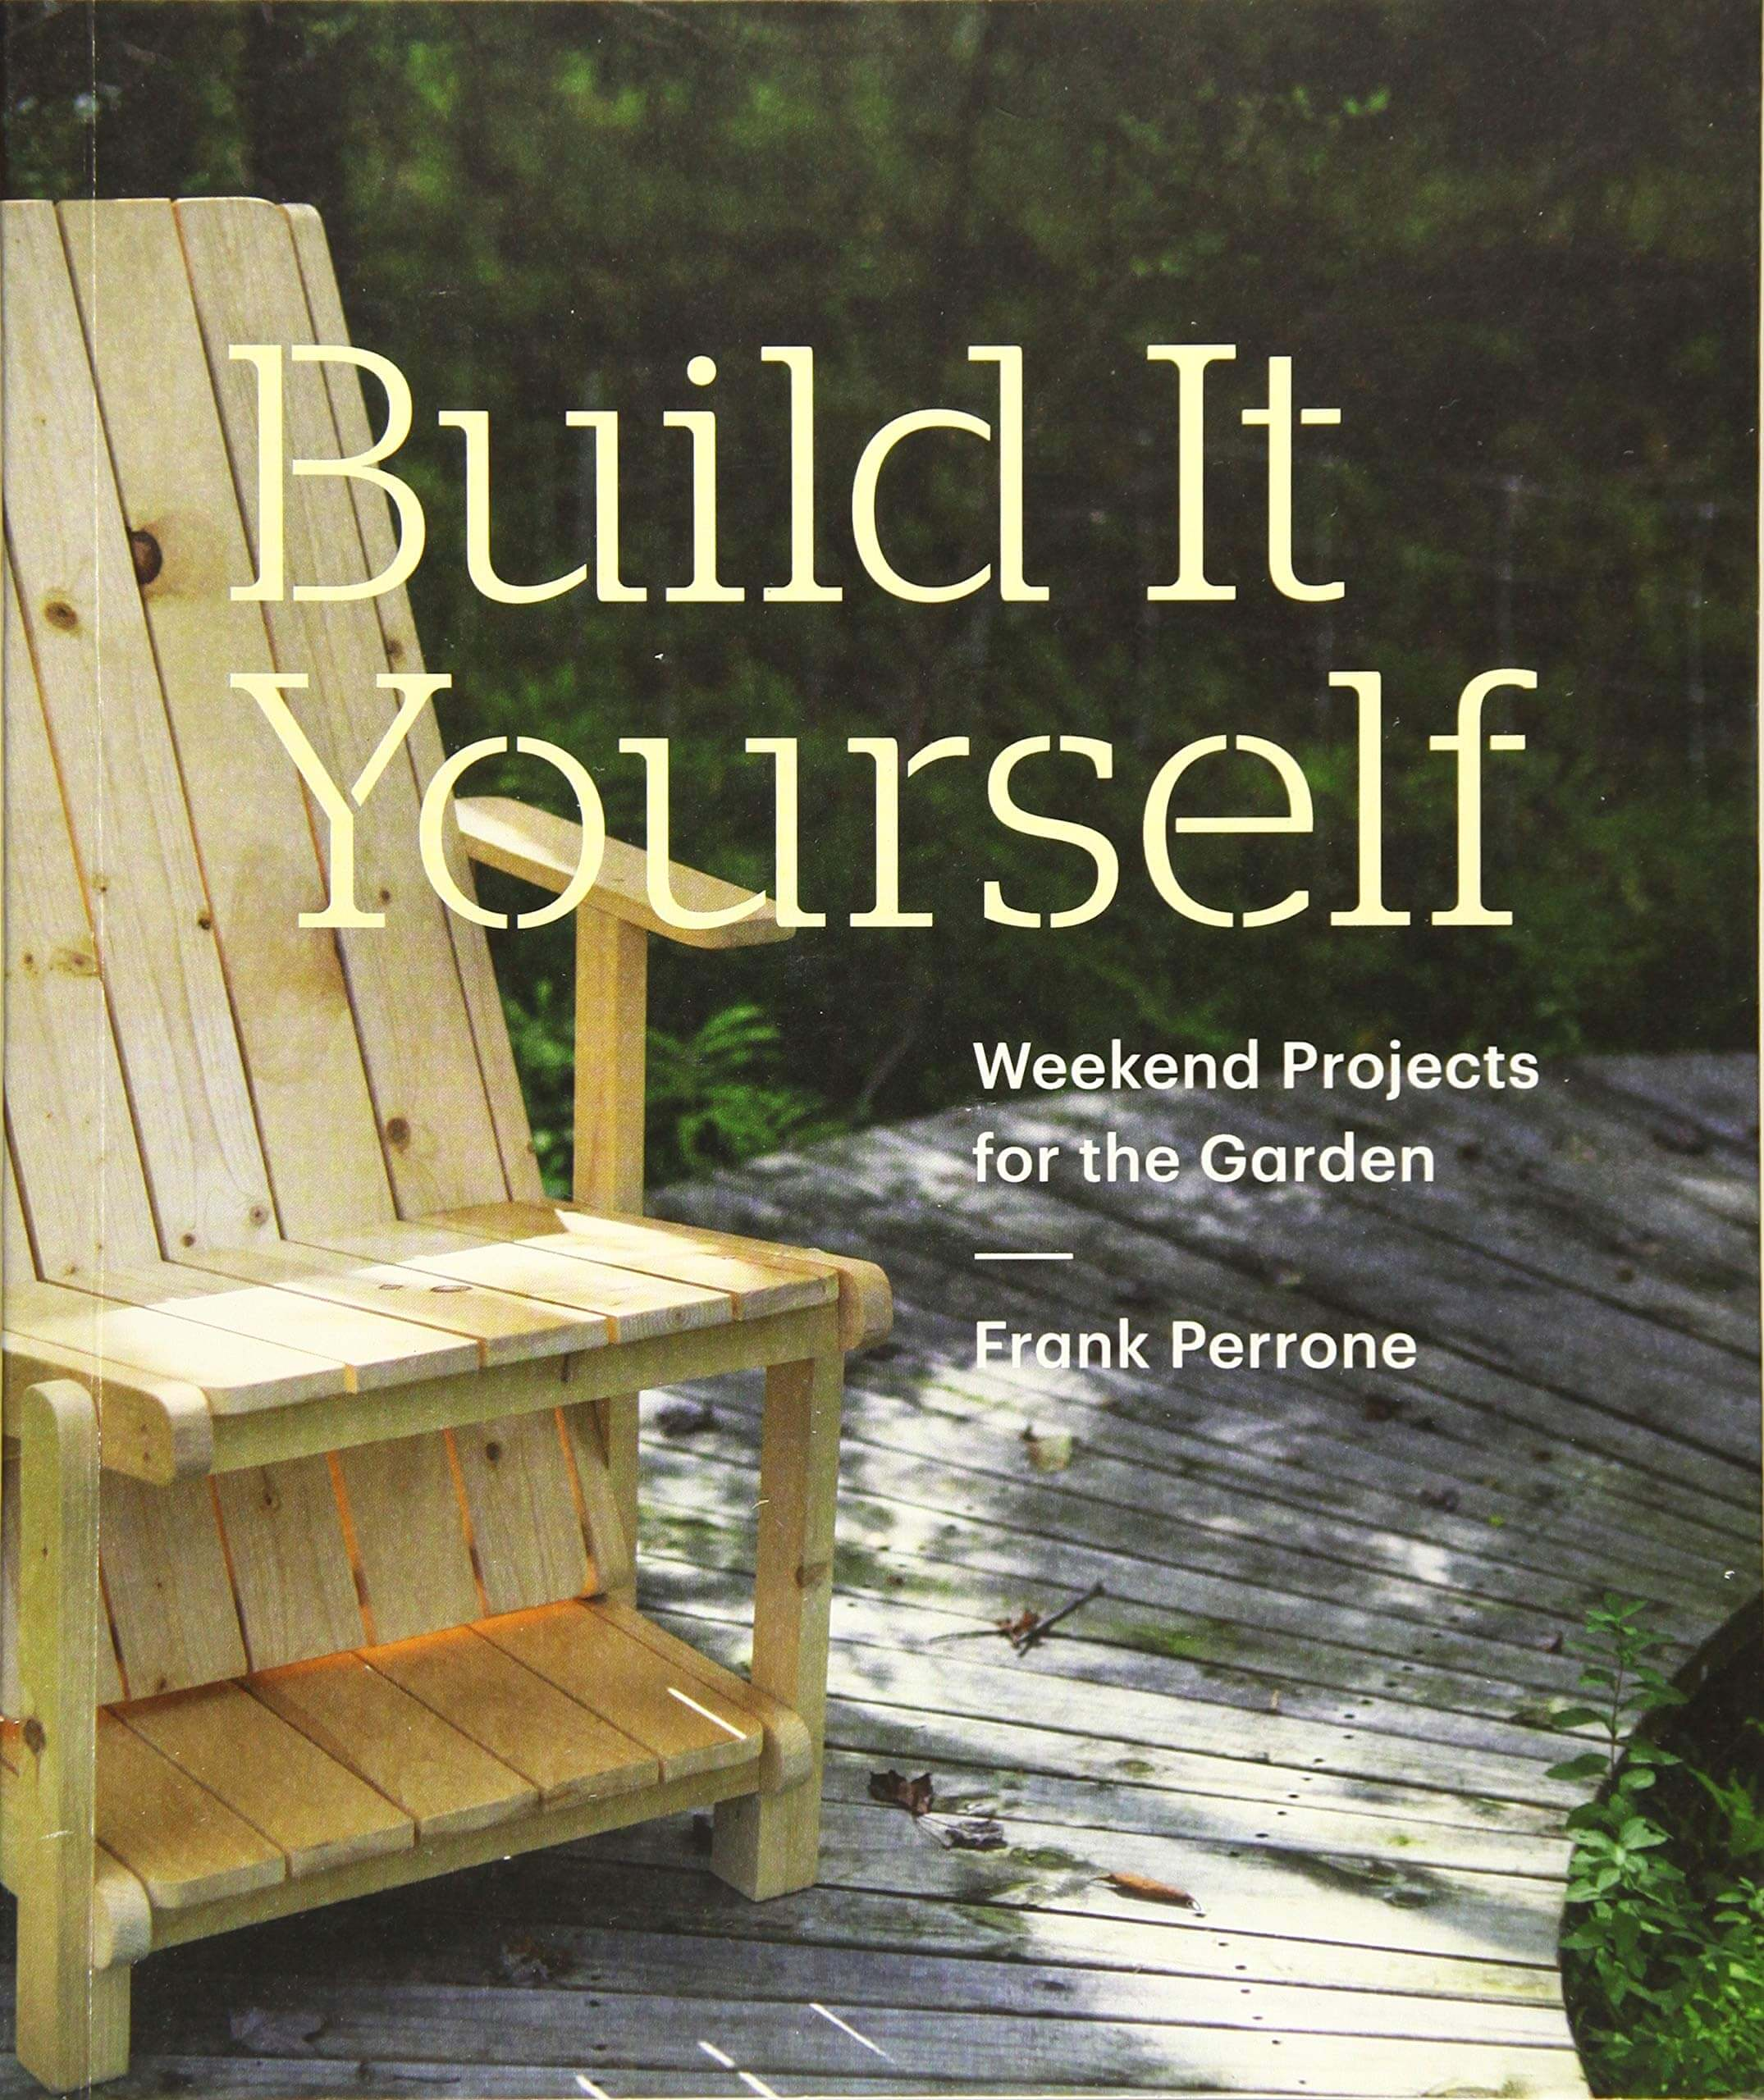 Build It Yourself book cover image